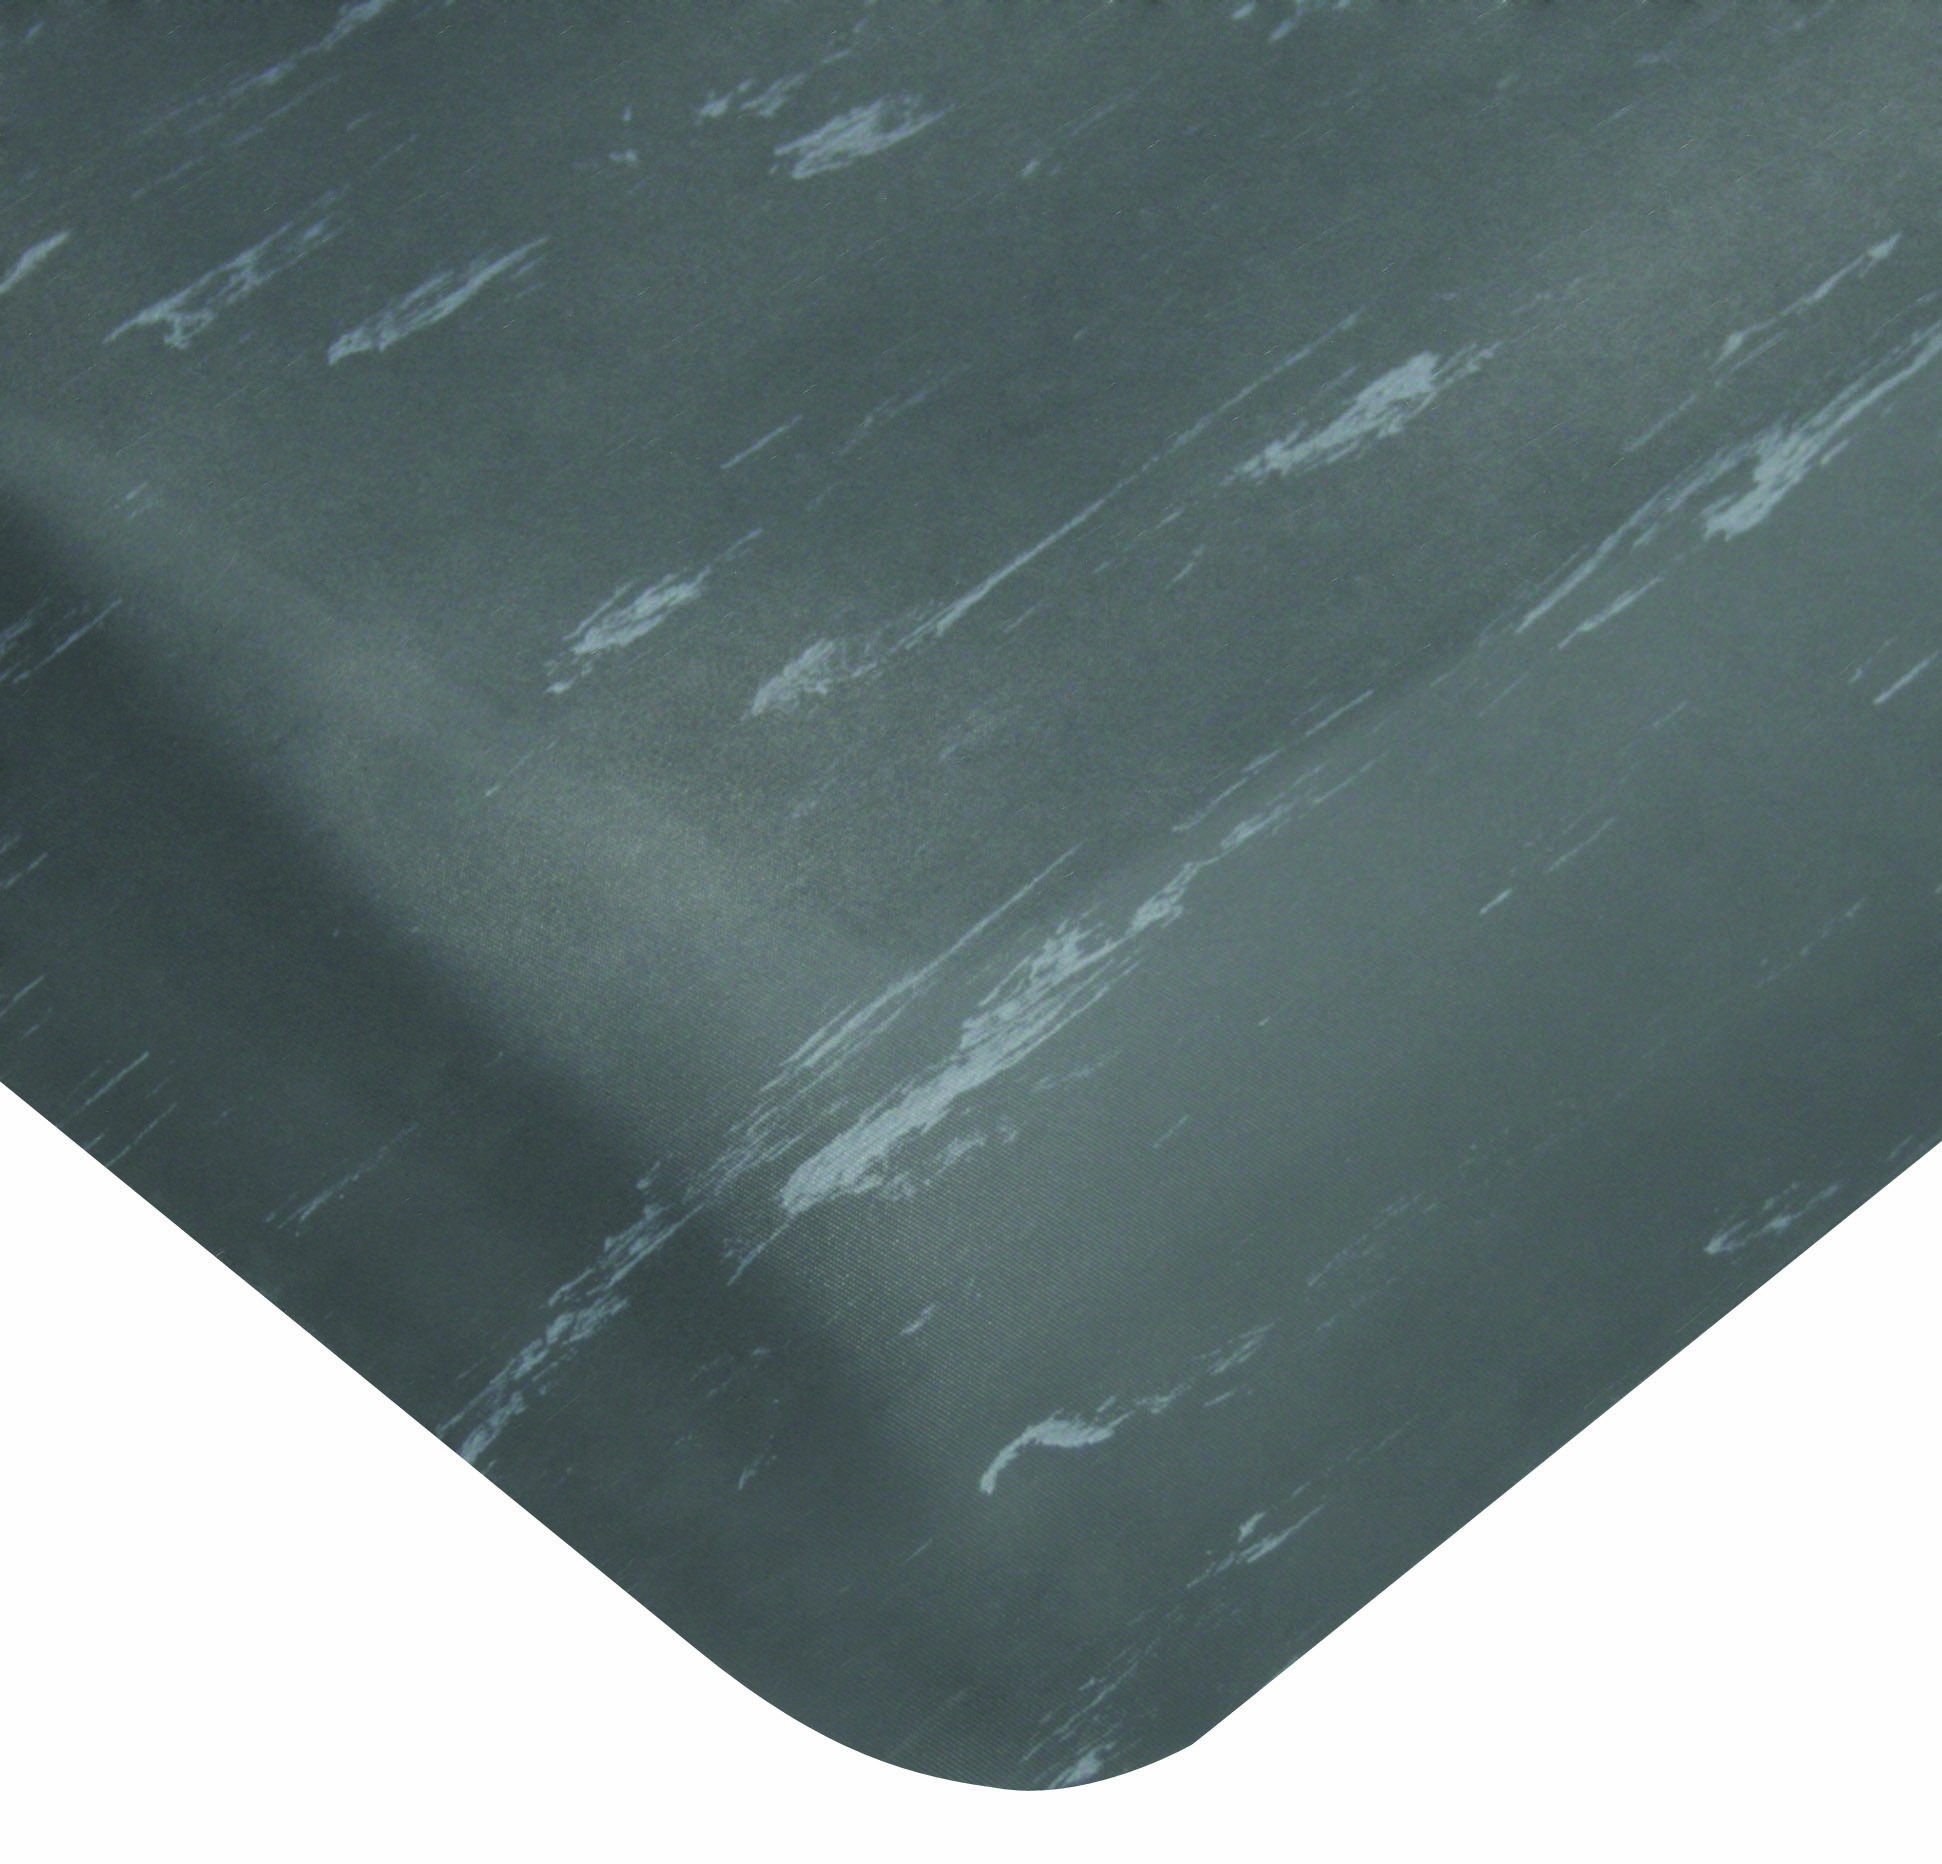 Wearwell PVC 496 Smart Tile-Top Medium Duty Anti-Fatigue Mat, Tapered Edges, for Dry Areas, 2' Width x 3' Length x 1/2'' Thickness, Charcoal